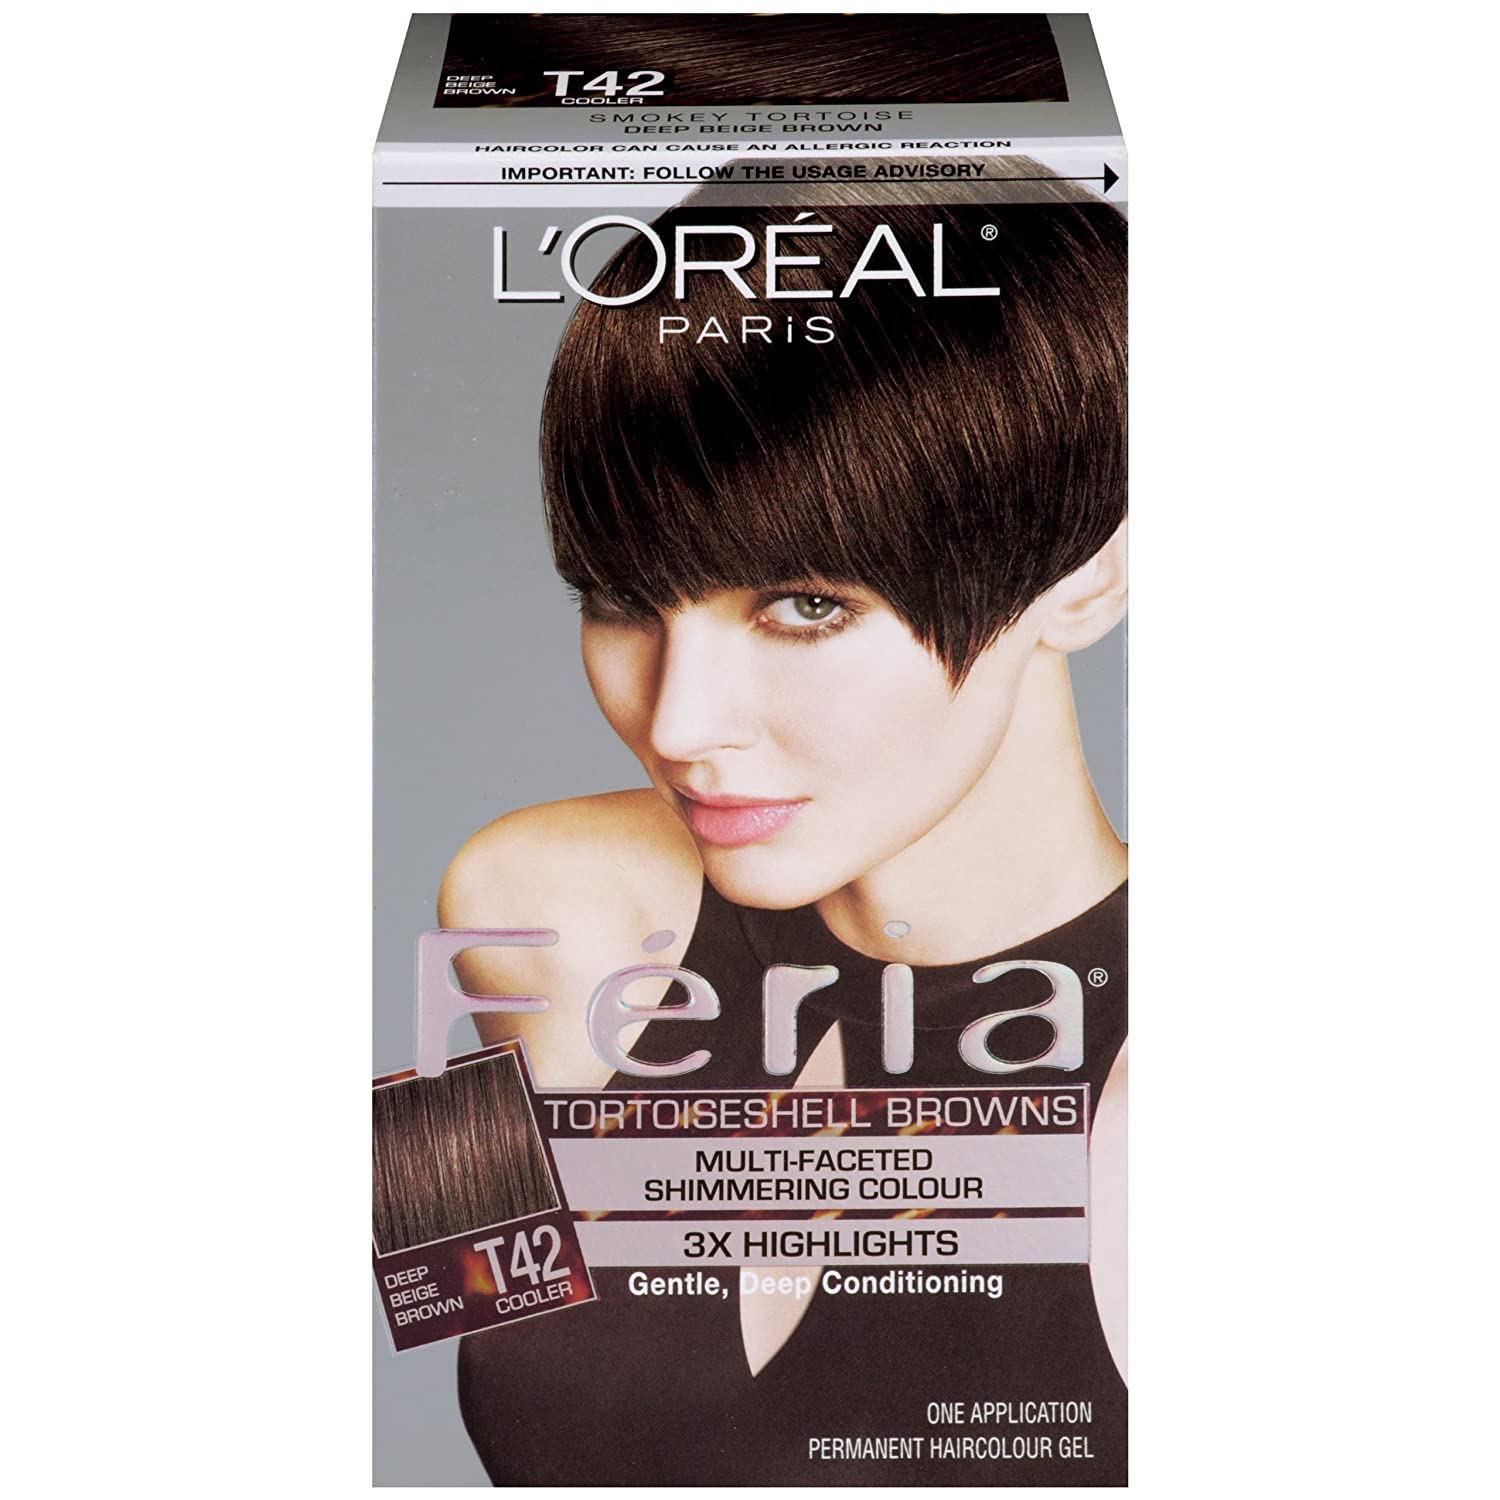 Amazon loreal paris feria hair color t42 deep beige brown amazon loreal paris feria hair color t42 deep beige brownsmoky tortoise hair highlighting products beauty nvjuhfo Image collections